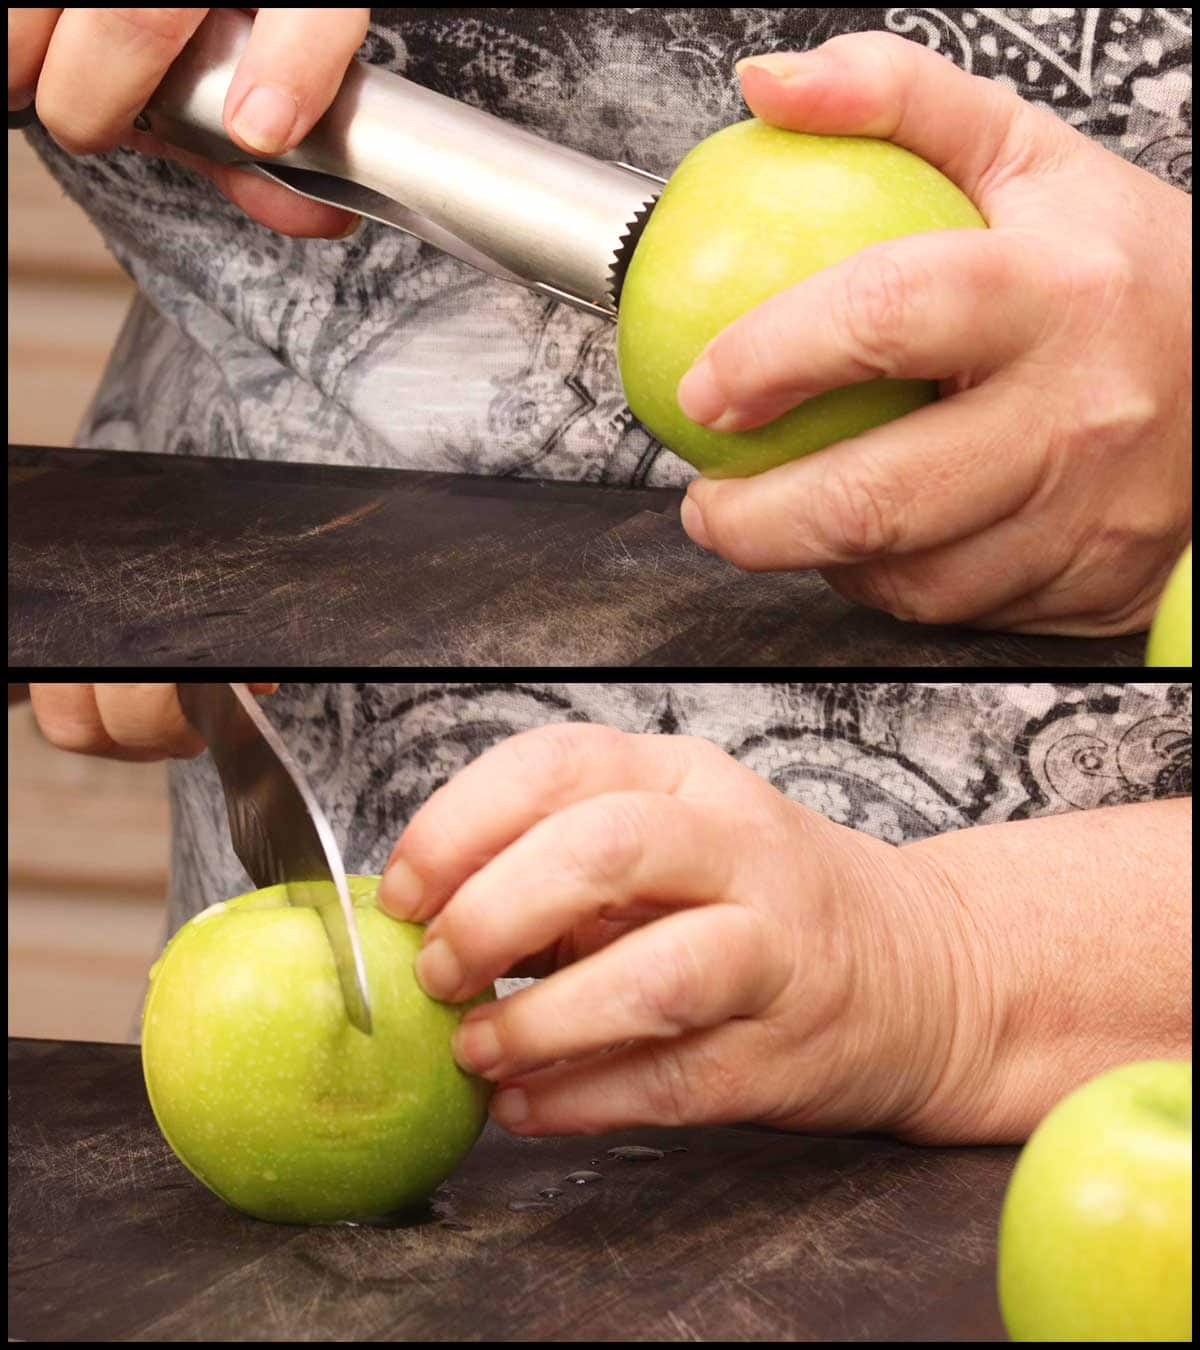 coring and slicing the apple